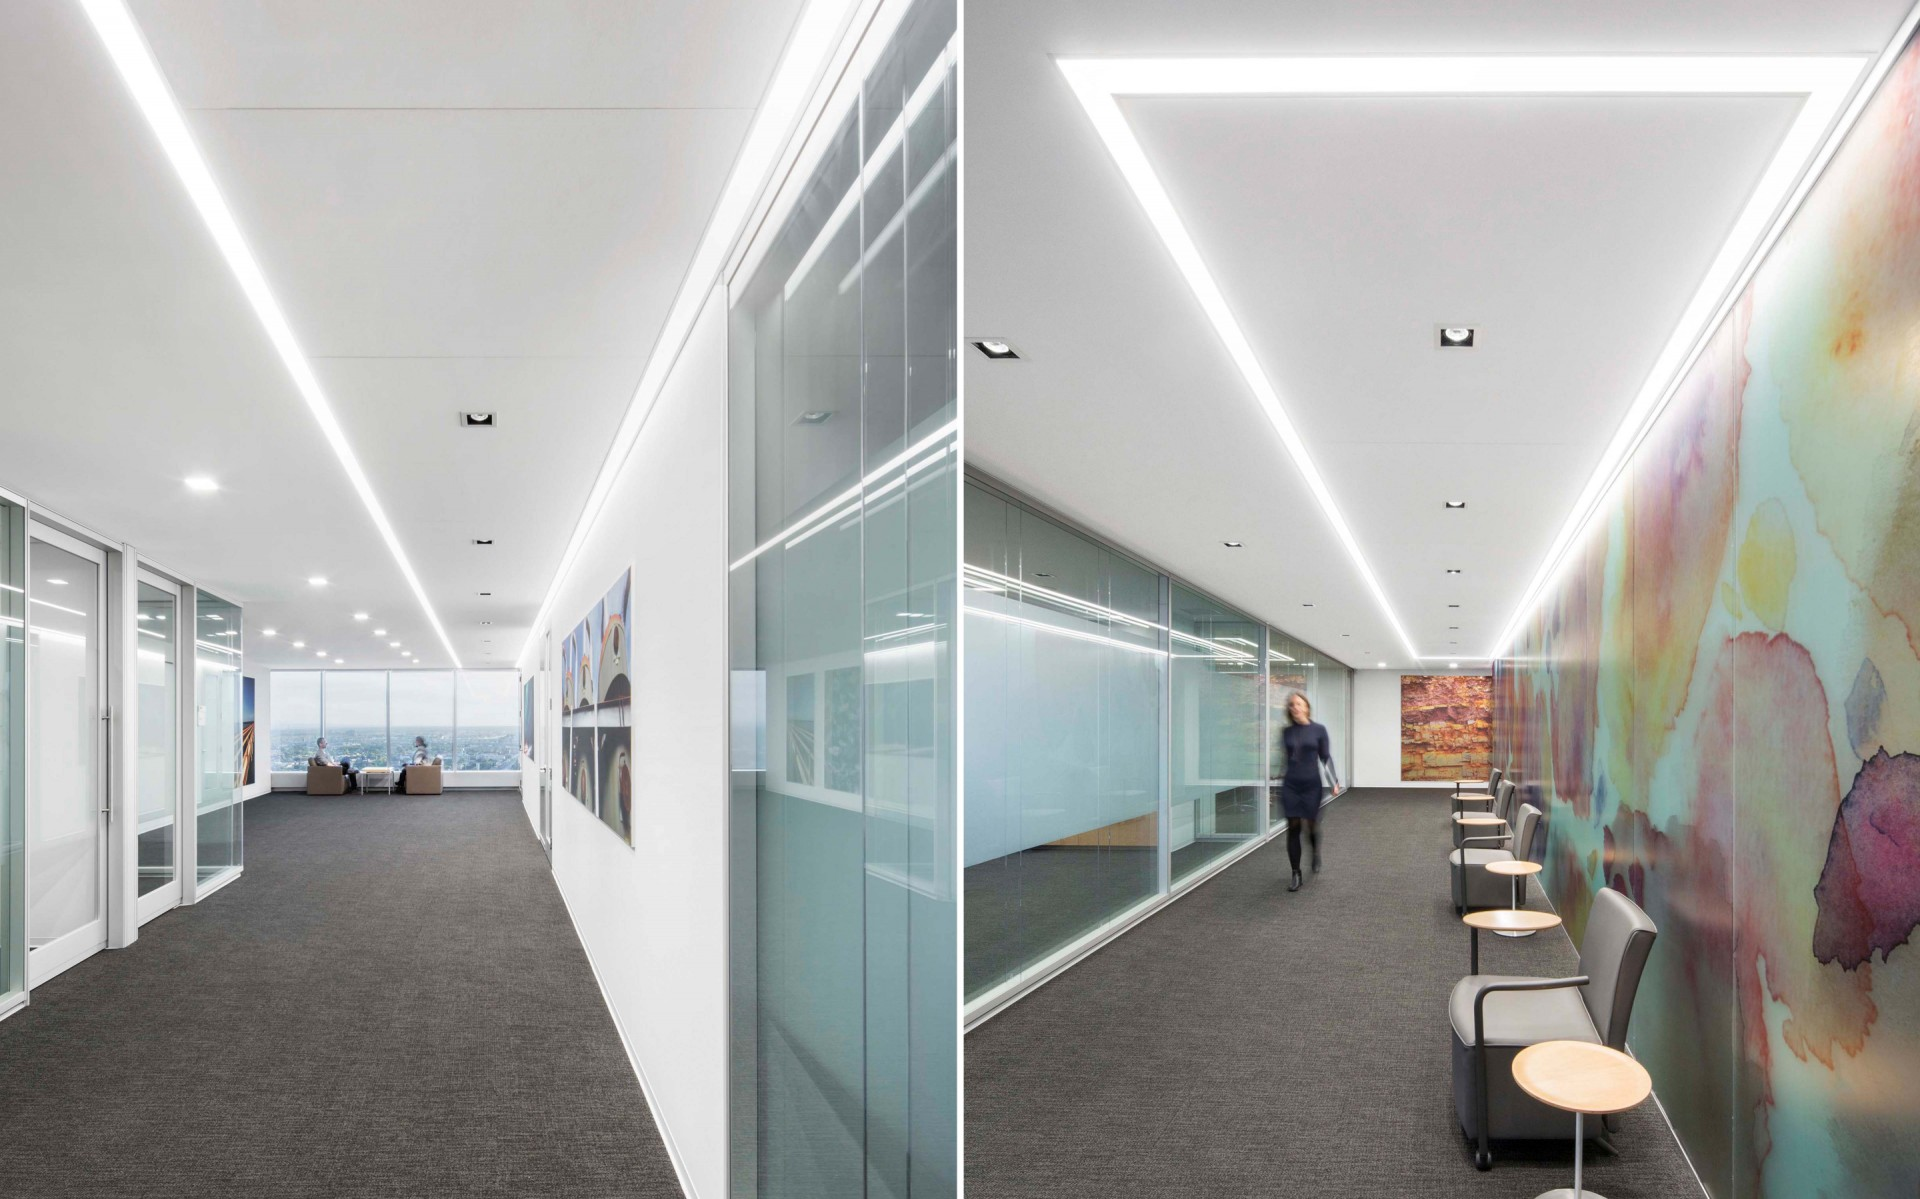 Their lighting concept was a minimalistic, modern and clean approach to warmth that would create an open-space environment that was welcoming and inspiring for those working there.  – Stéphane Brugger